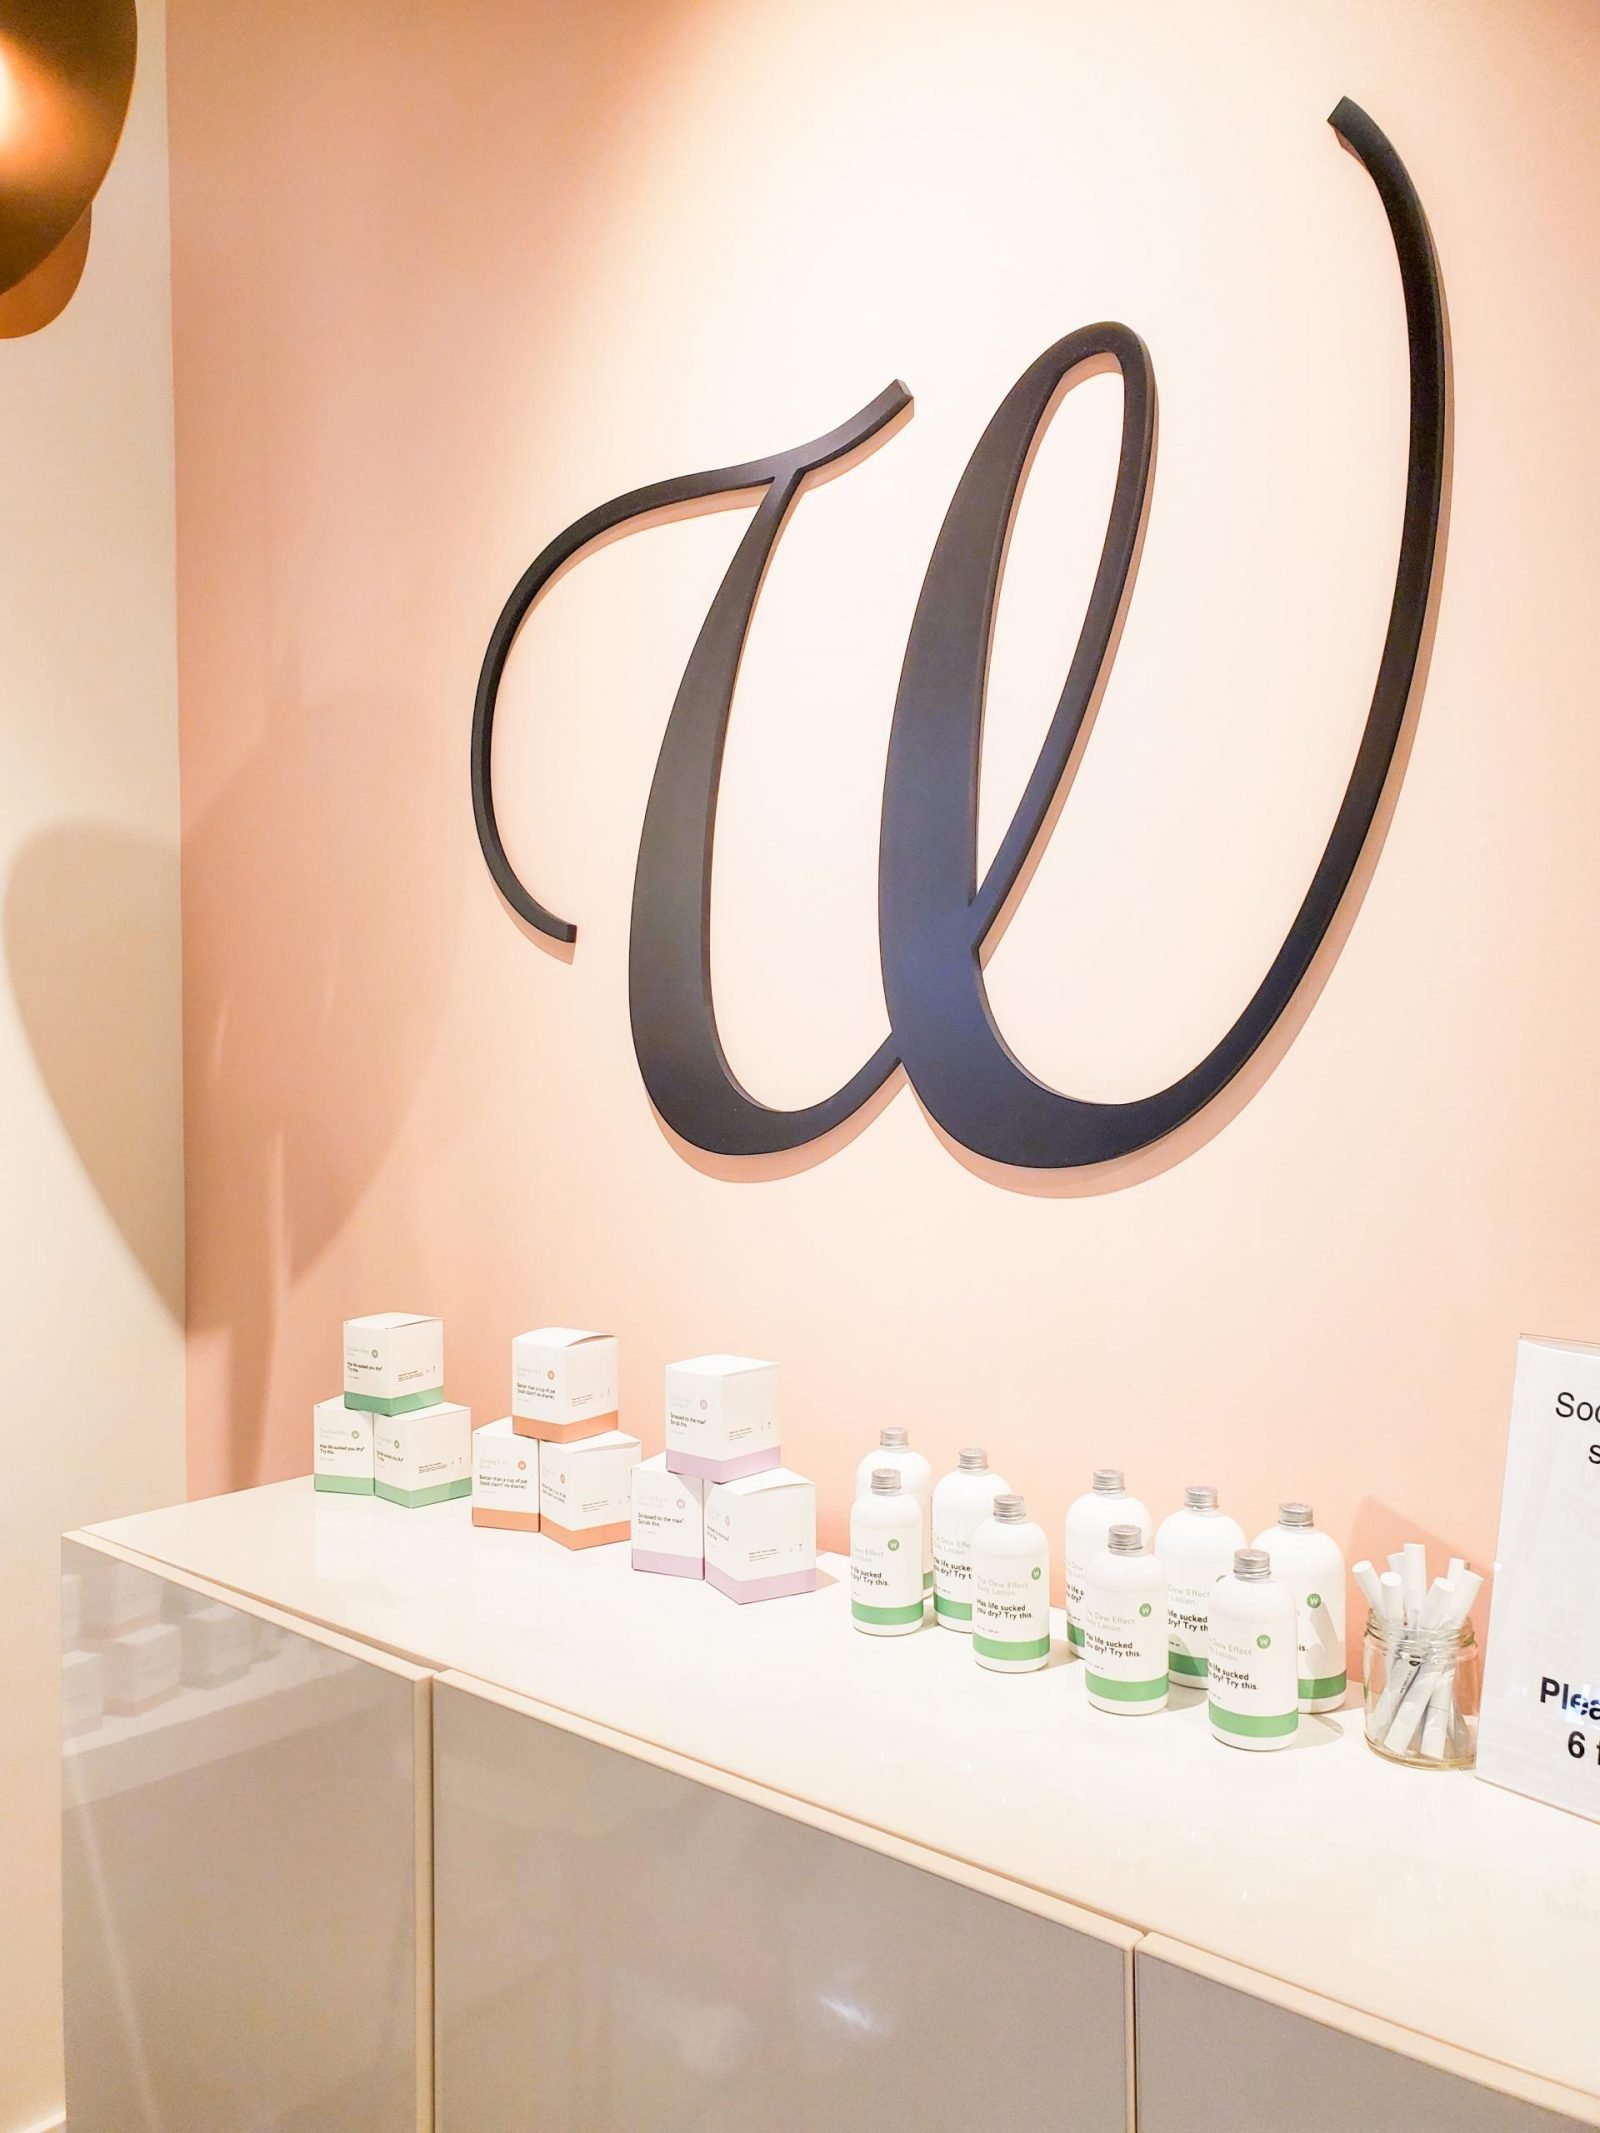 The W Nail Bar logo on a pink wall above an array of their lotions and other products